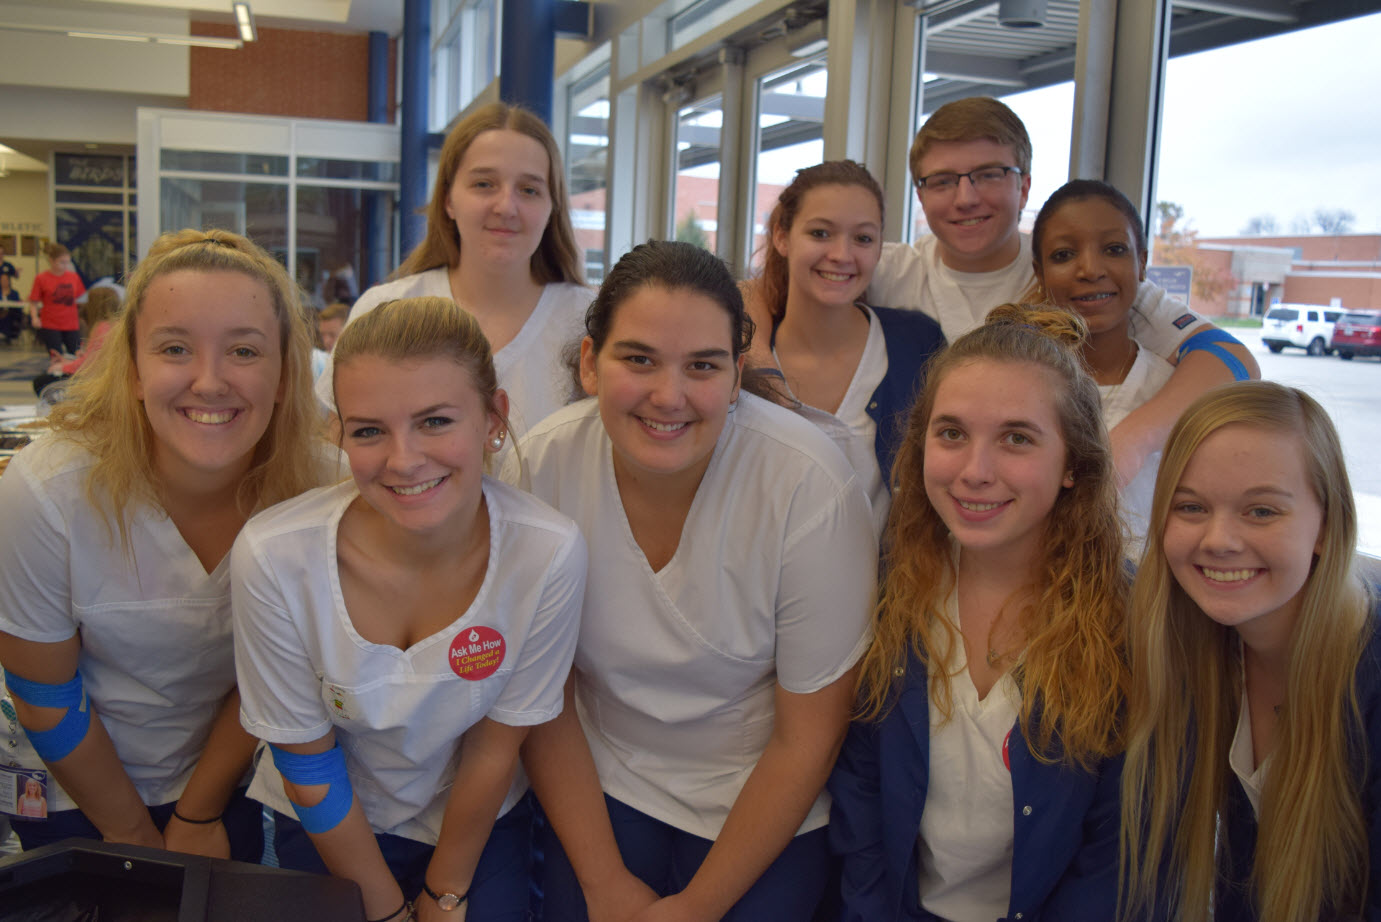 Allied Health Students Volunteered at the school's Unity Blood Drive in November